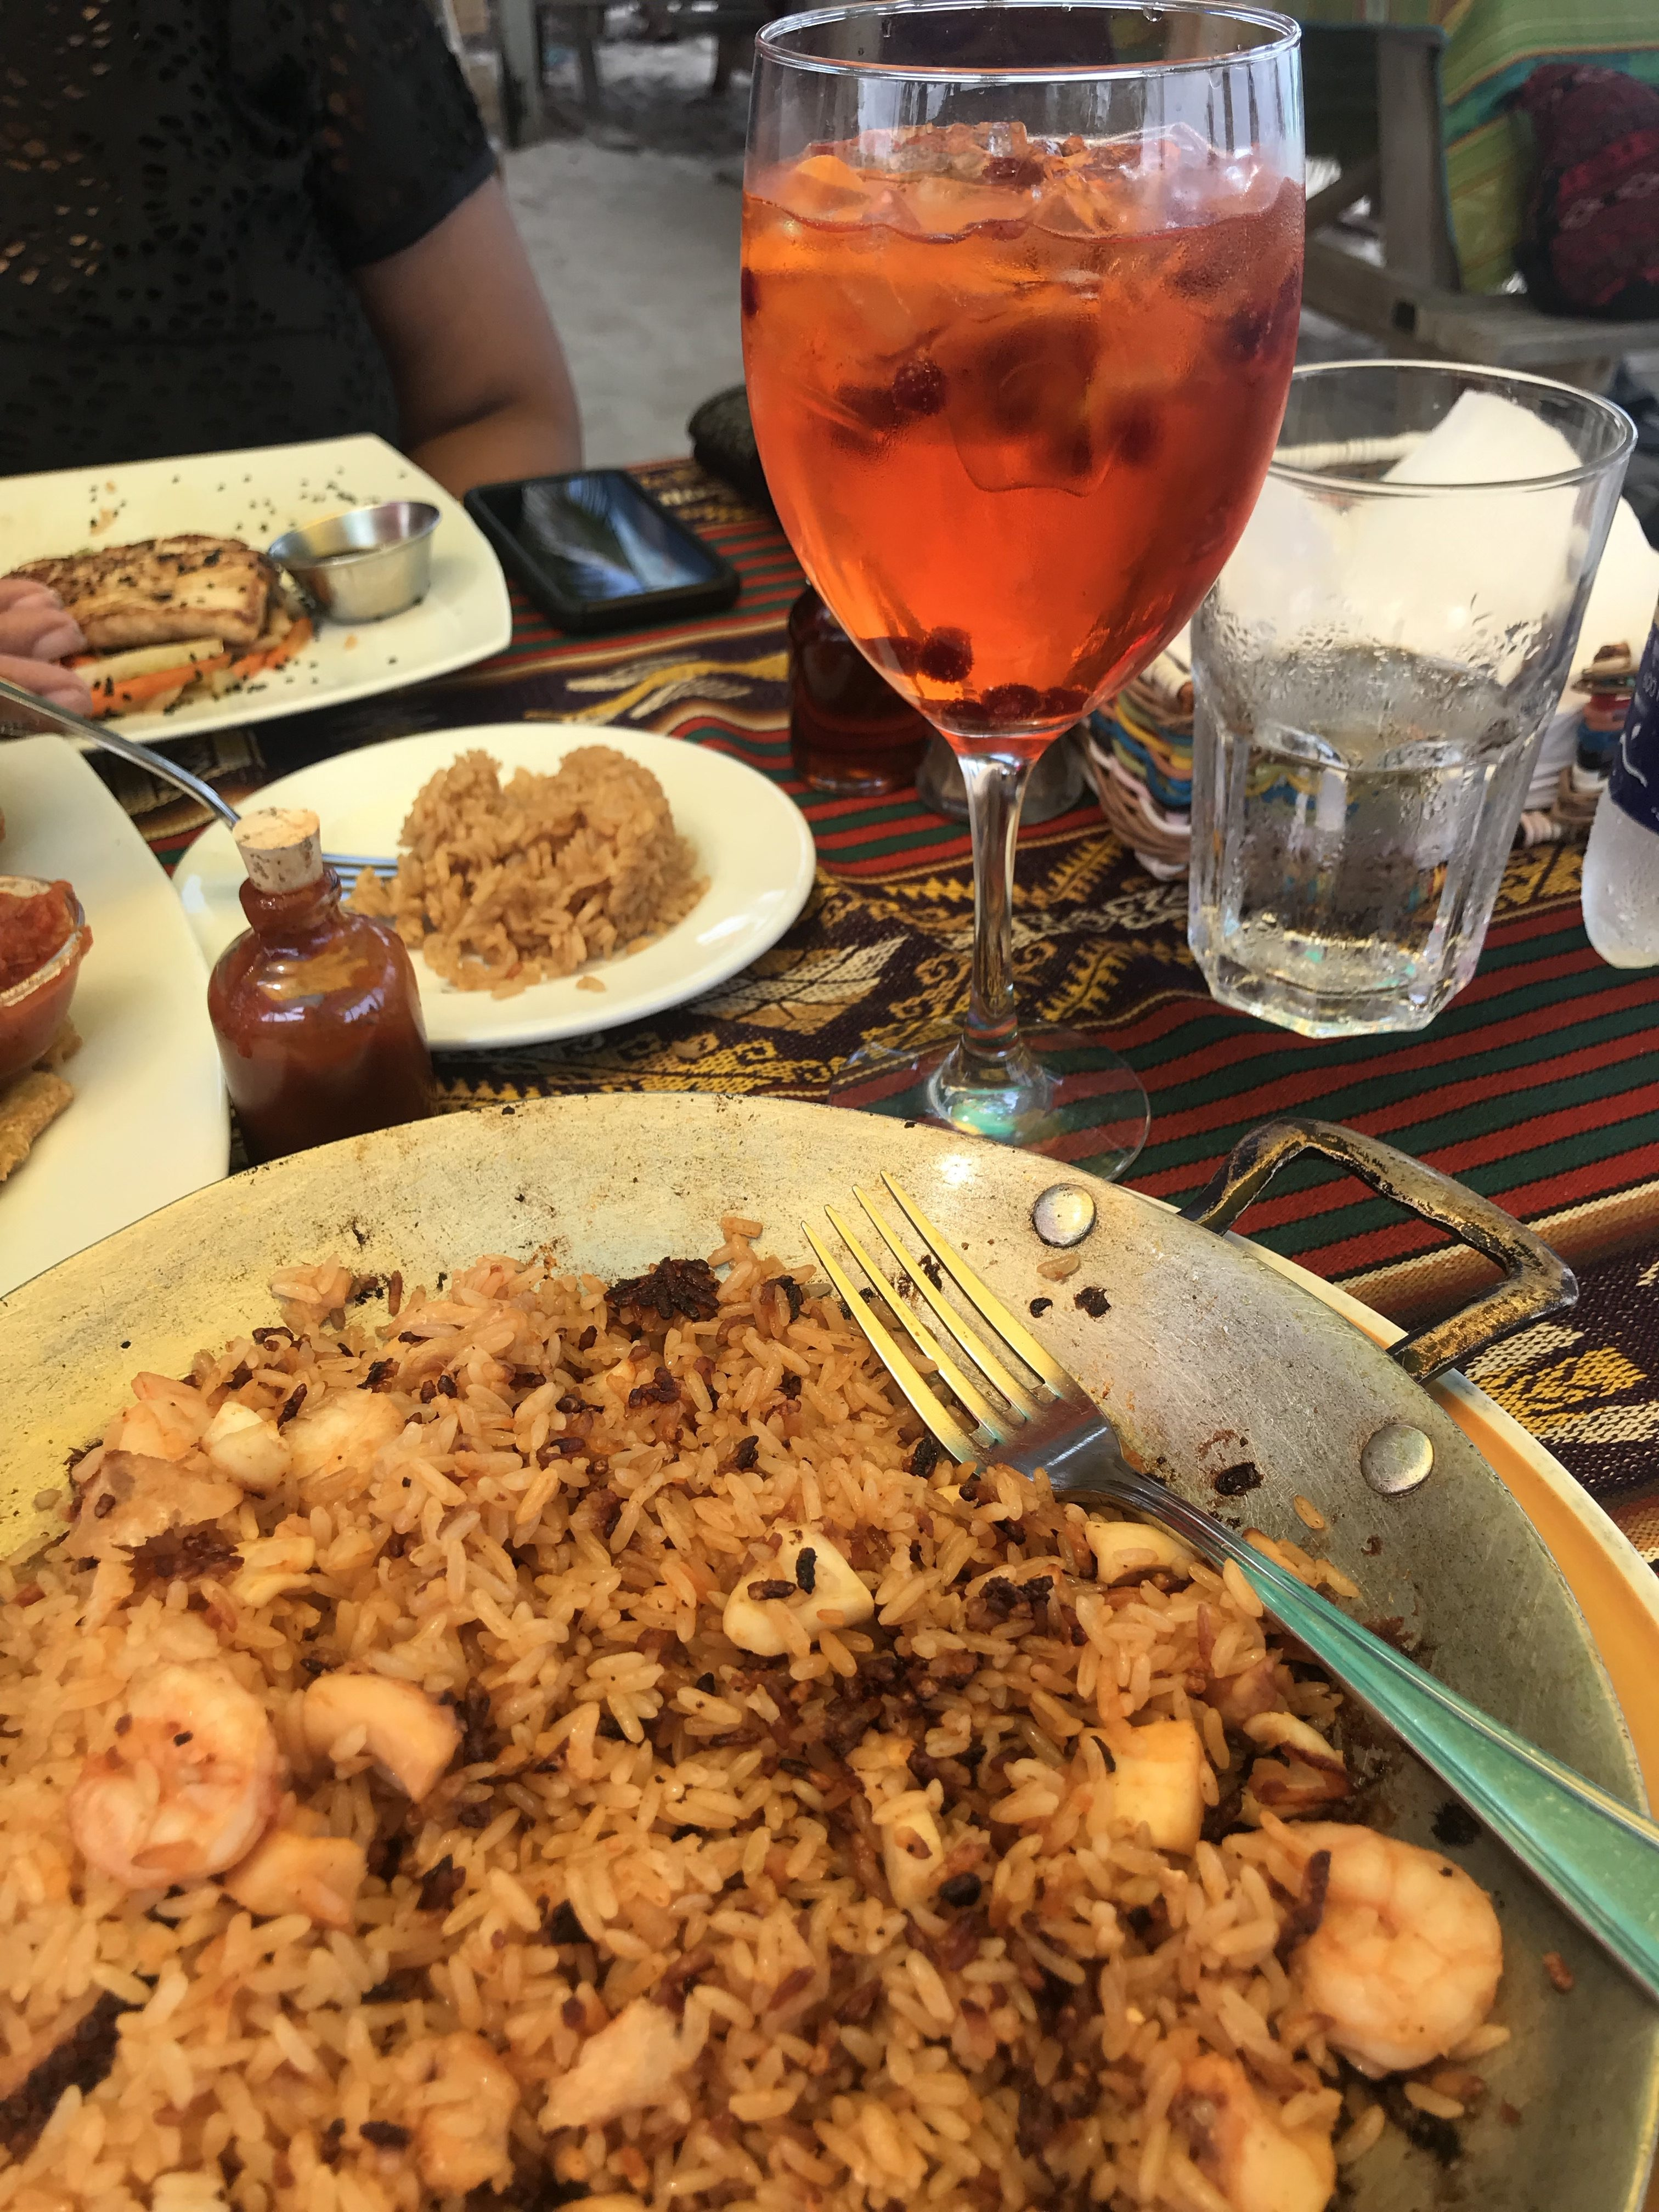 Rice and mariscos with crunchy bottomed rice